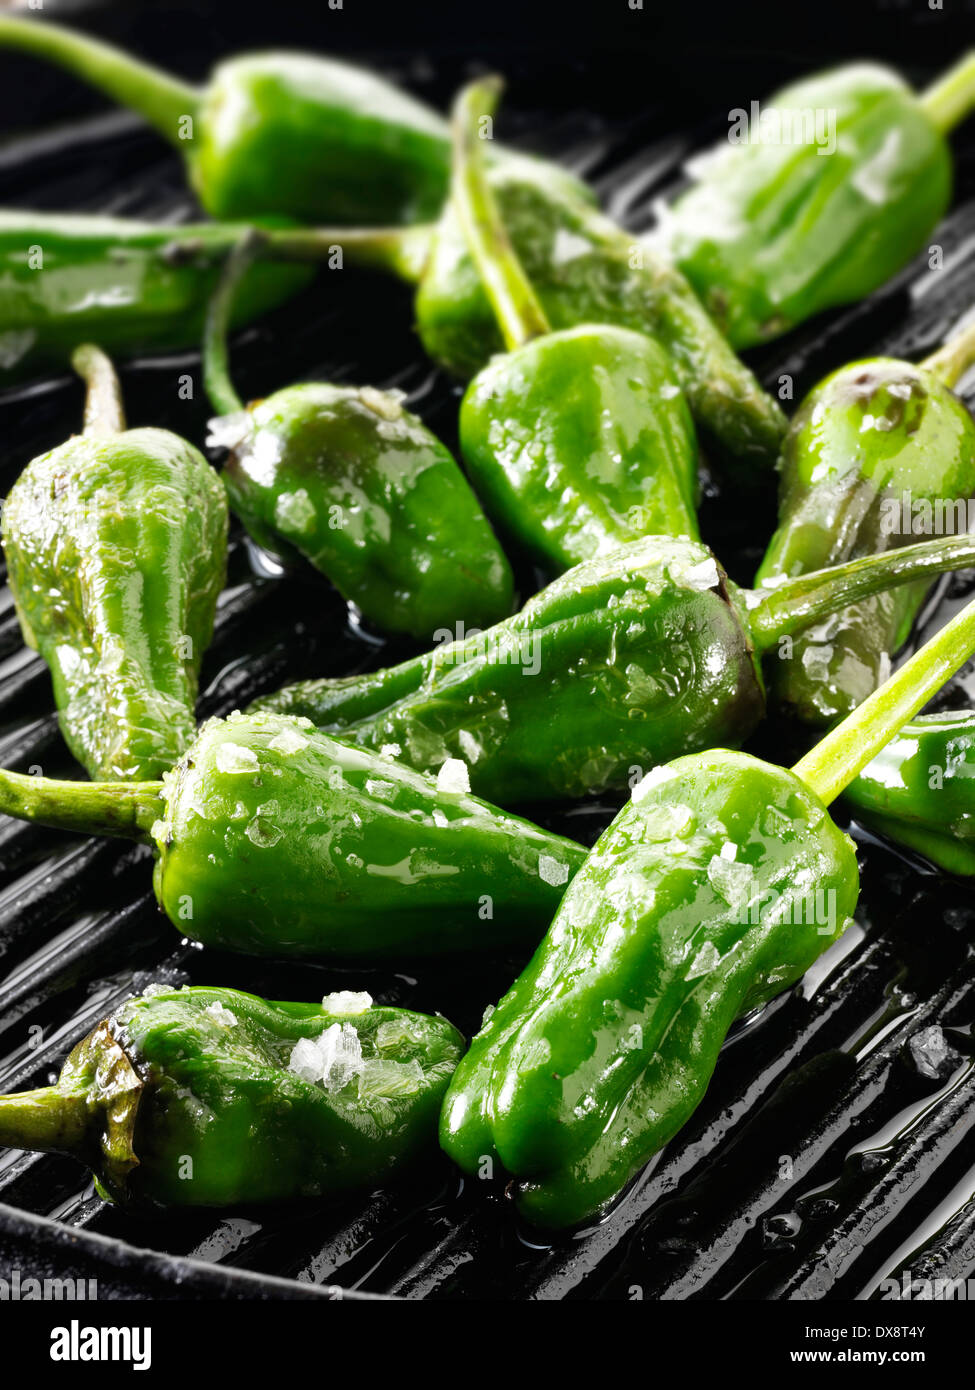 Tout Griddled padron chillies Photo Stock